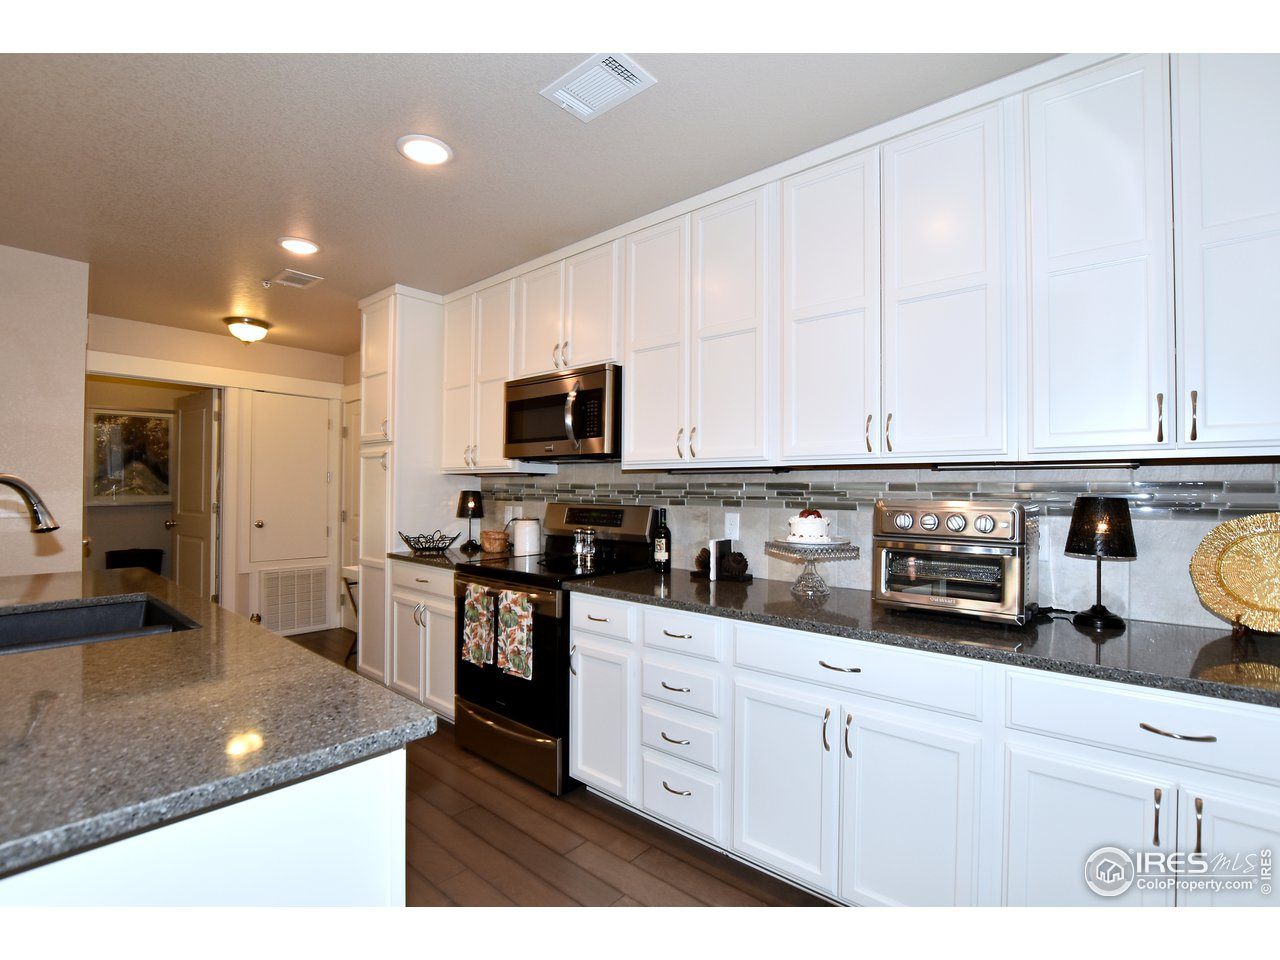 View back to front entrance and spacious laundry room